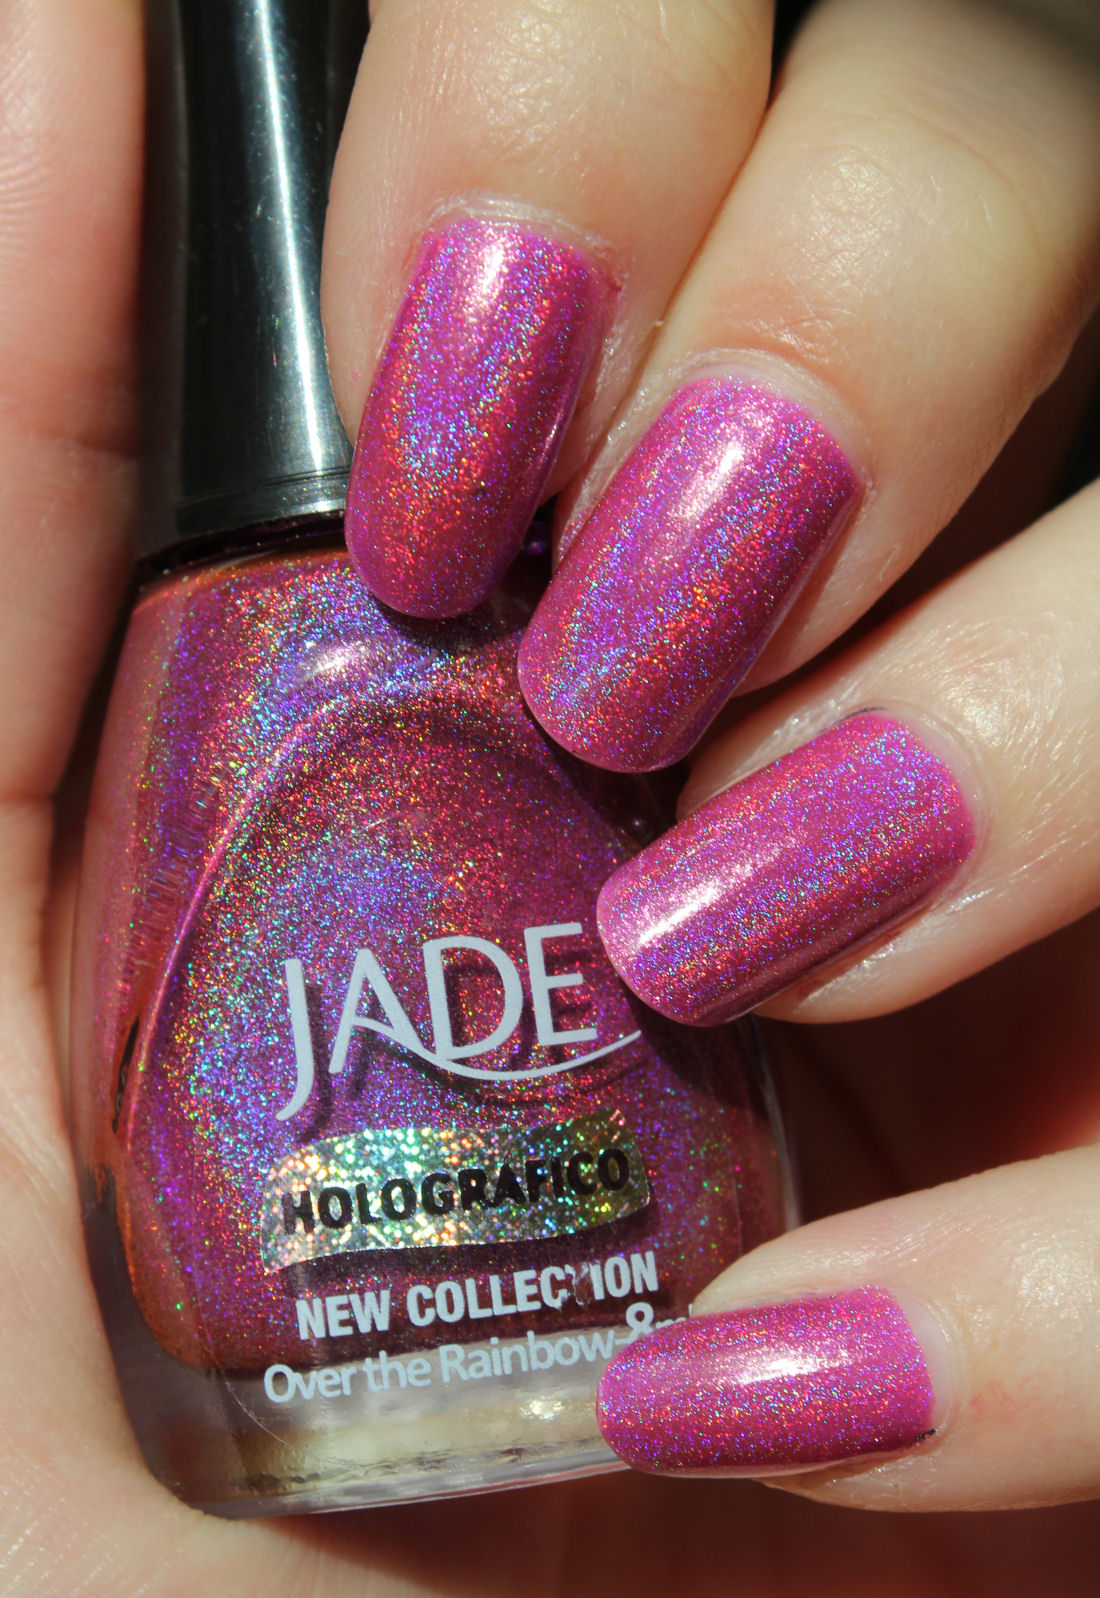 http://lacquediction.blogspot.de/2015/04/jade-holografico-over-rainbow.html